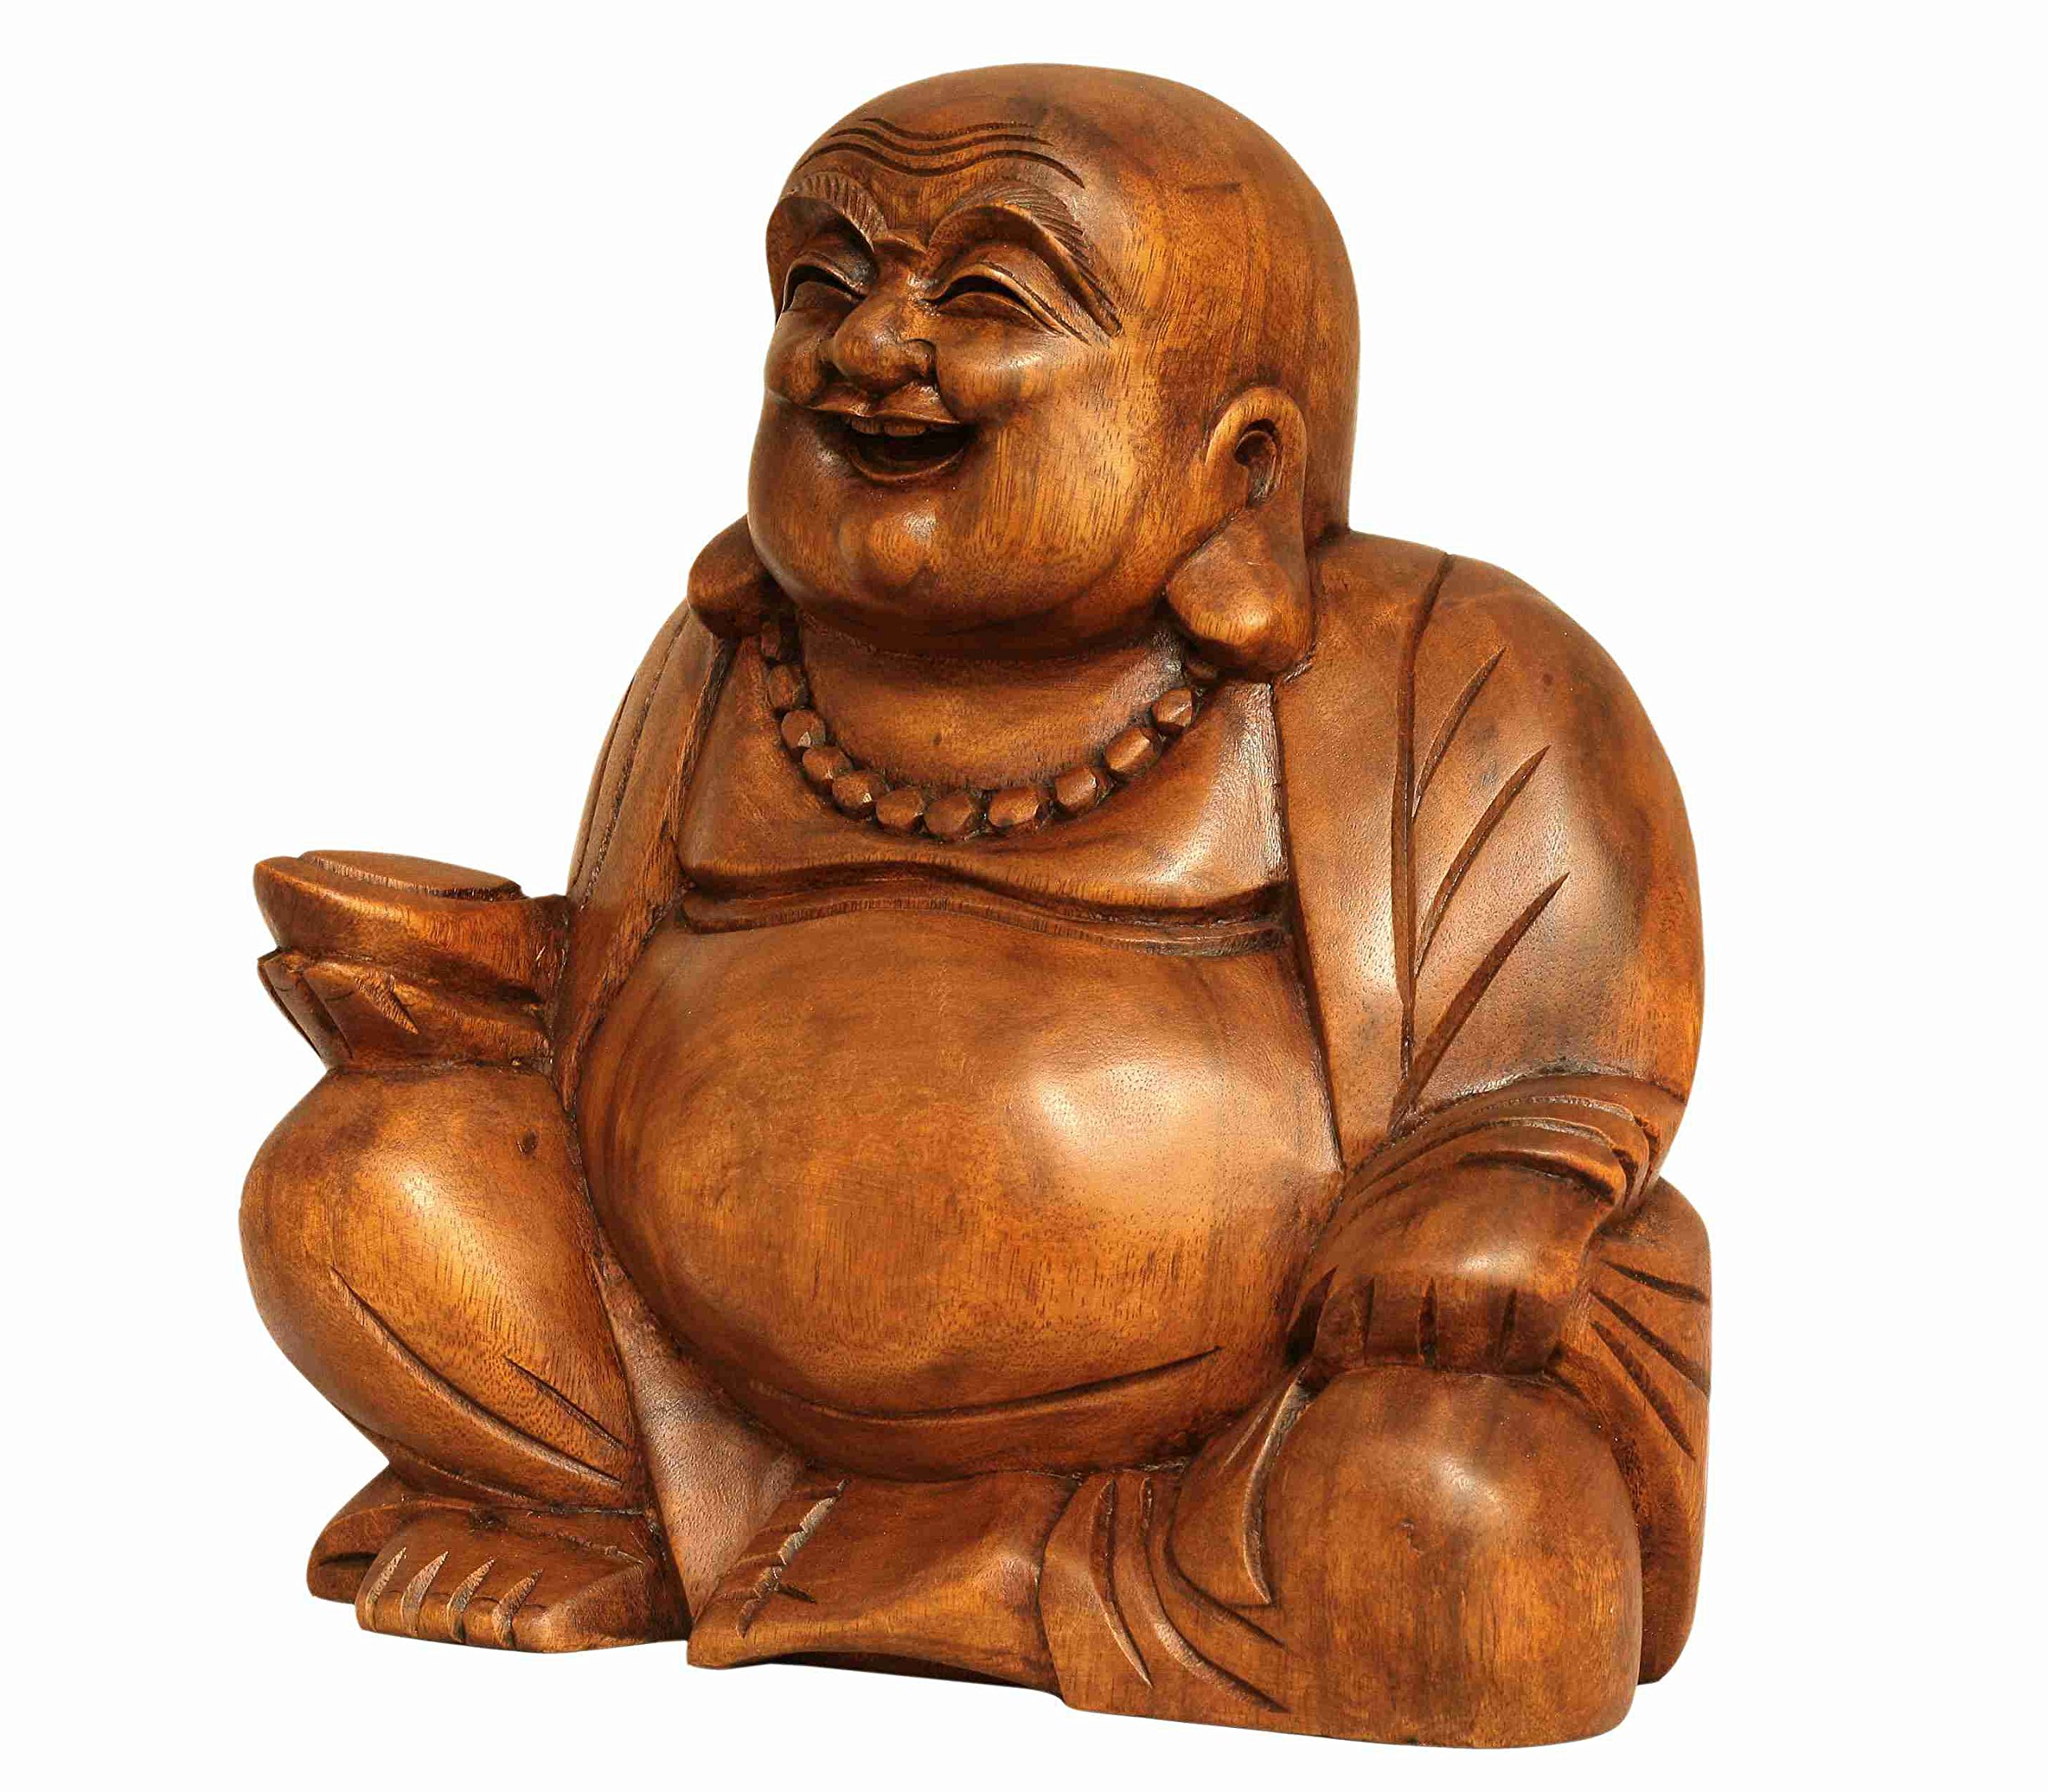 G6 COLLECTION 8'' Wooden Laughing Happy Buddha Handmade Art Statue Handcrafted Sculpture Home Decor (Small) by G6 Collection (Image #3)